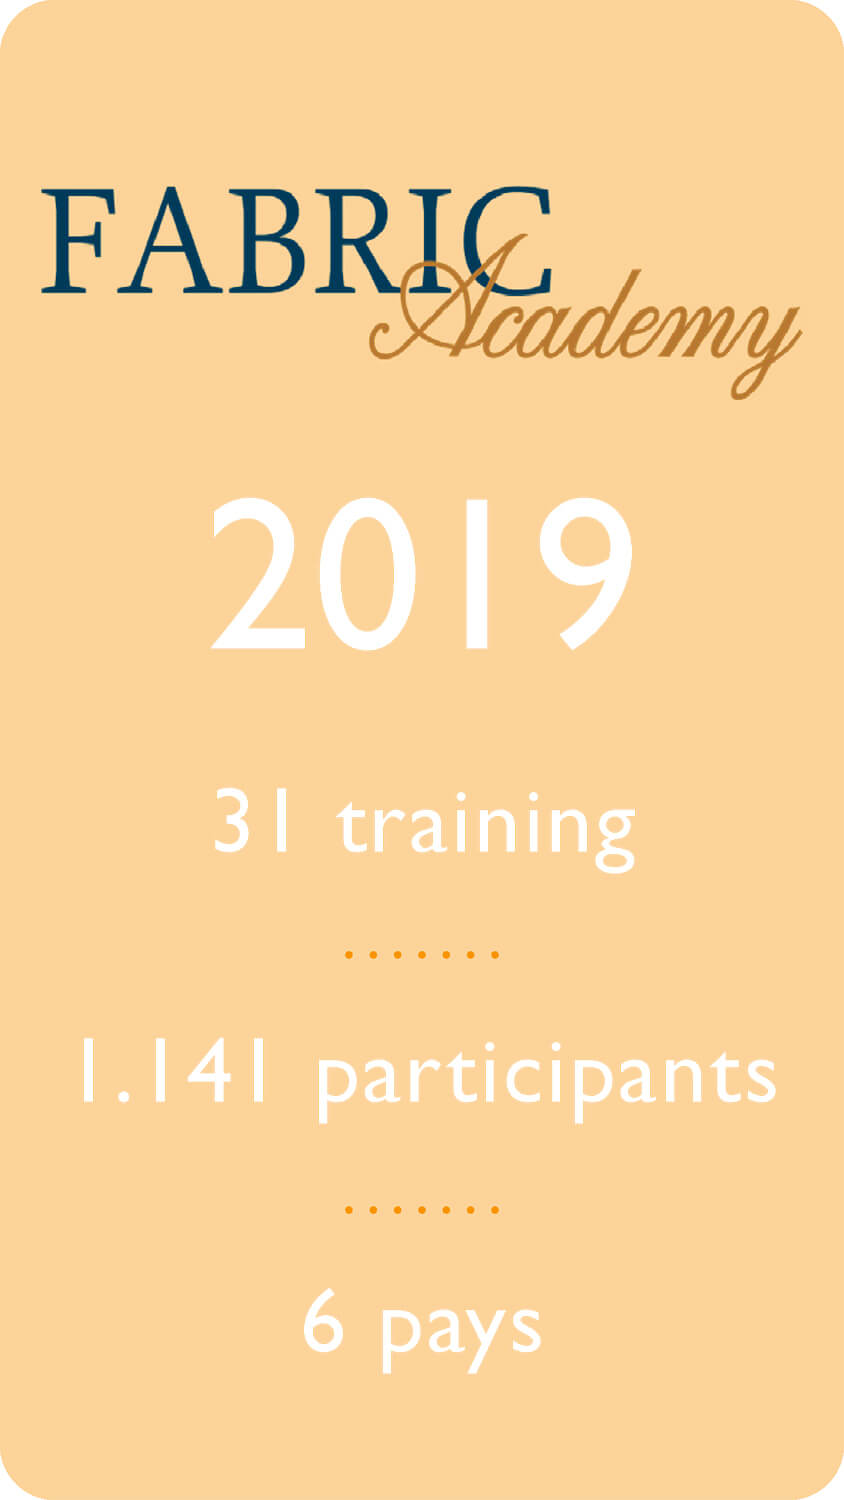 FABRIC Academy 2019 : 31 training 1141 participants 6 pays